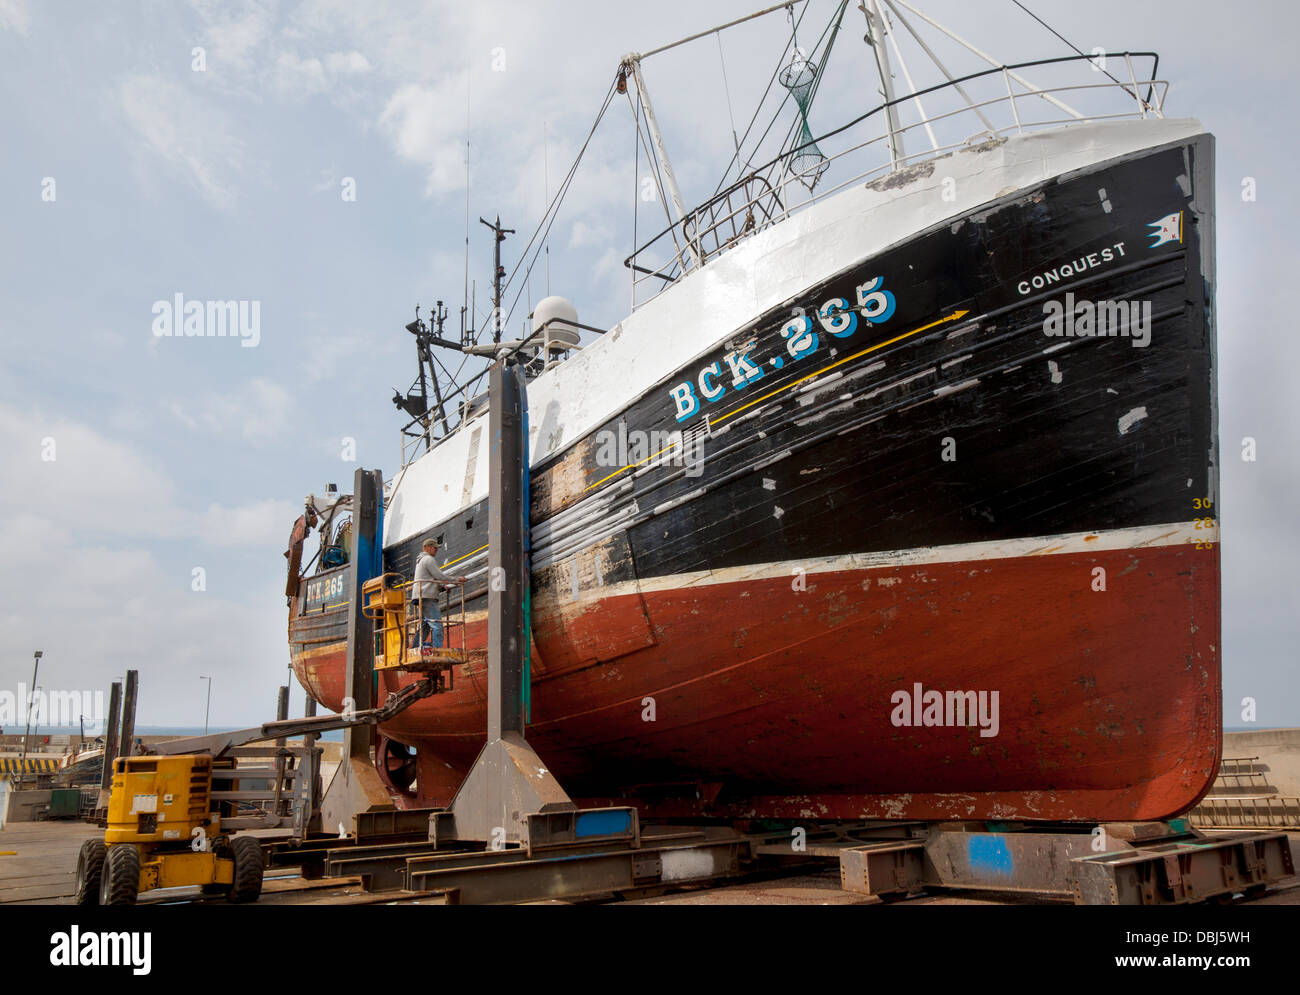 Conquest BCK 265 trawler _ Scottish Fishing Fleet being repaired and refurbished at Macduff dry-dock, Morayshire, - Stock Image